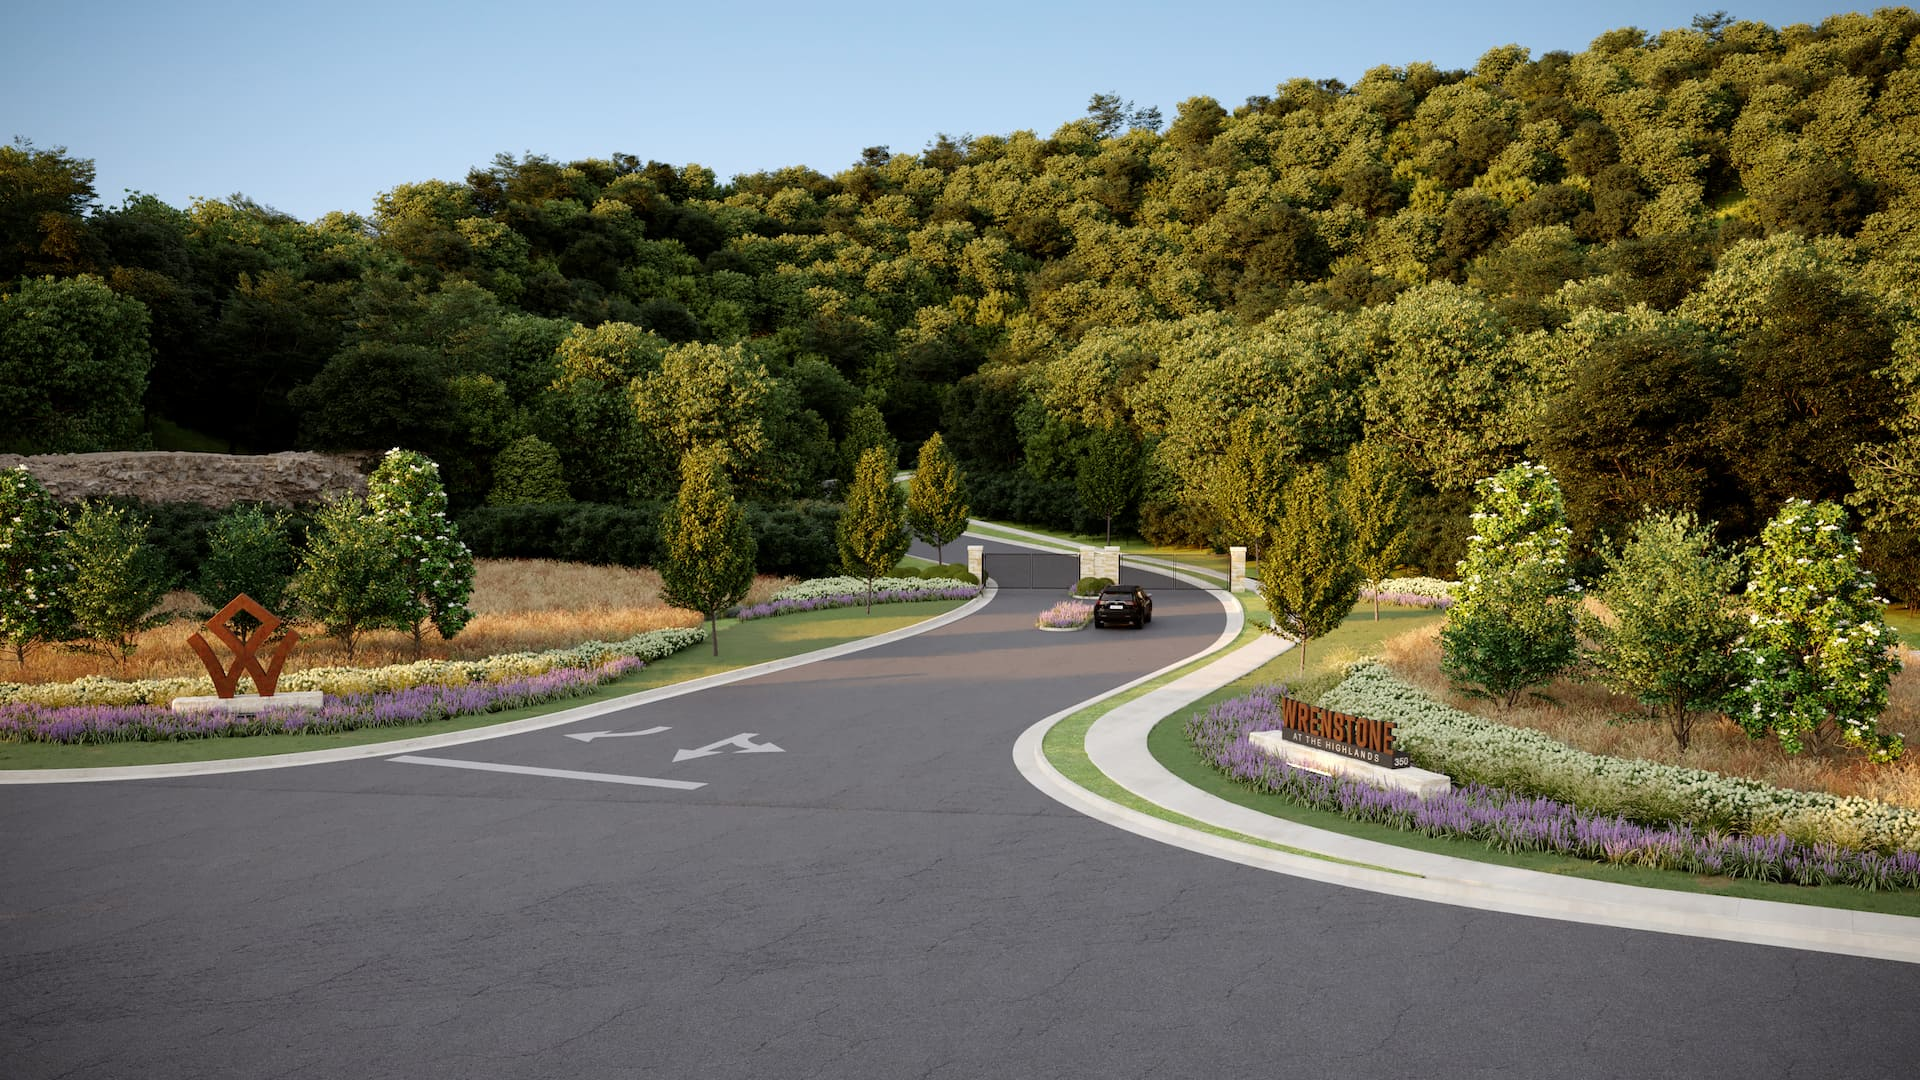 Rendering of Wrenstone Gated Entry and Driveway